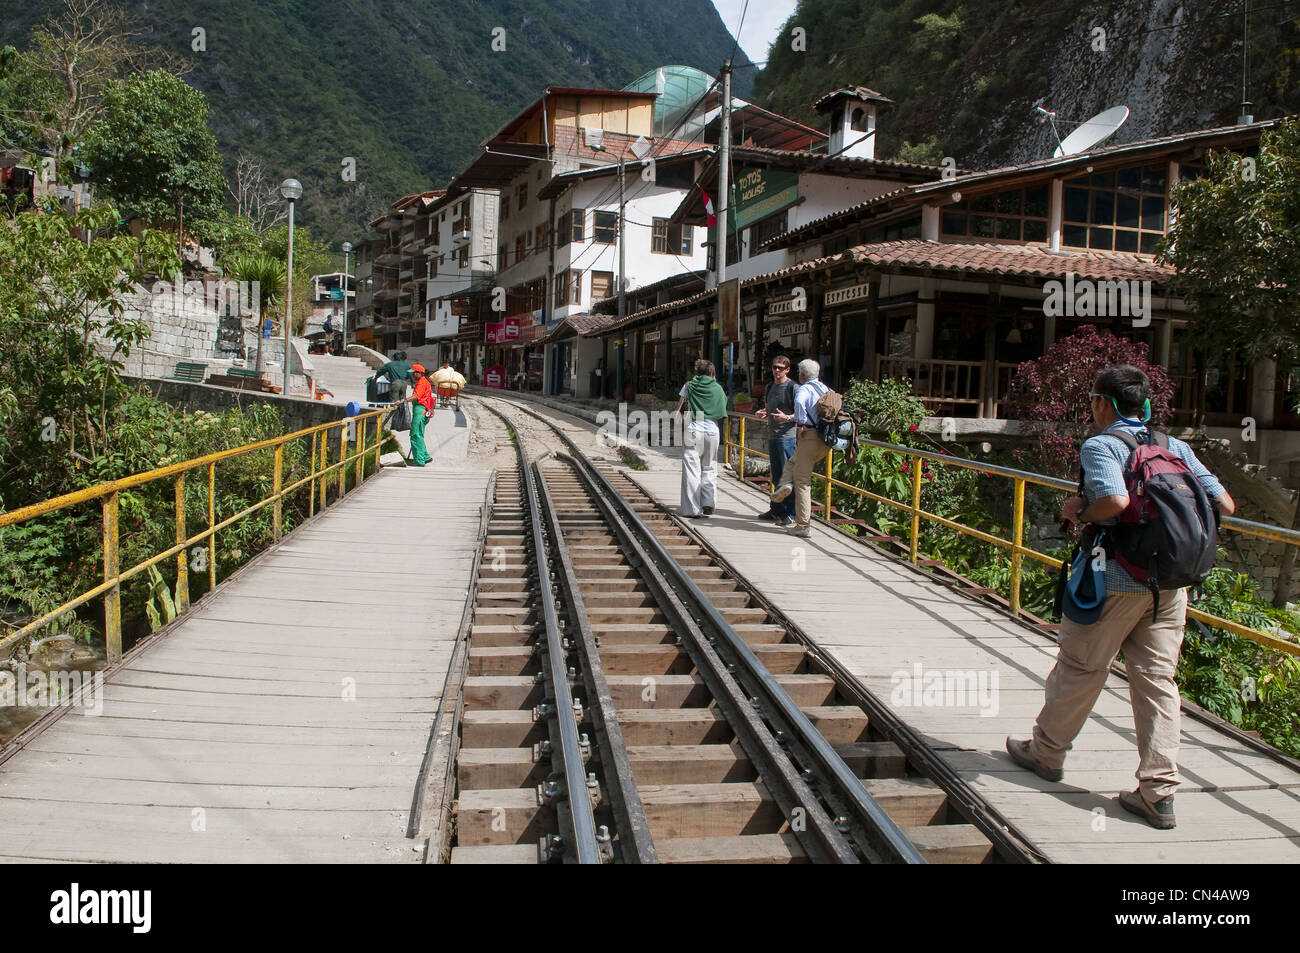 Peru, Cuzco Province, Aguas Calientes, quechua railway station in the town at the foot of Machu Picchu - Stock Image